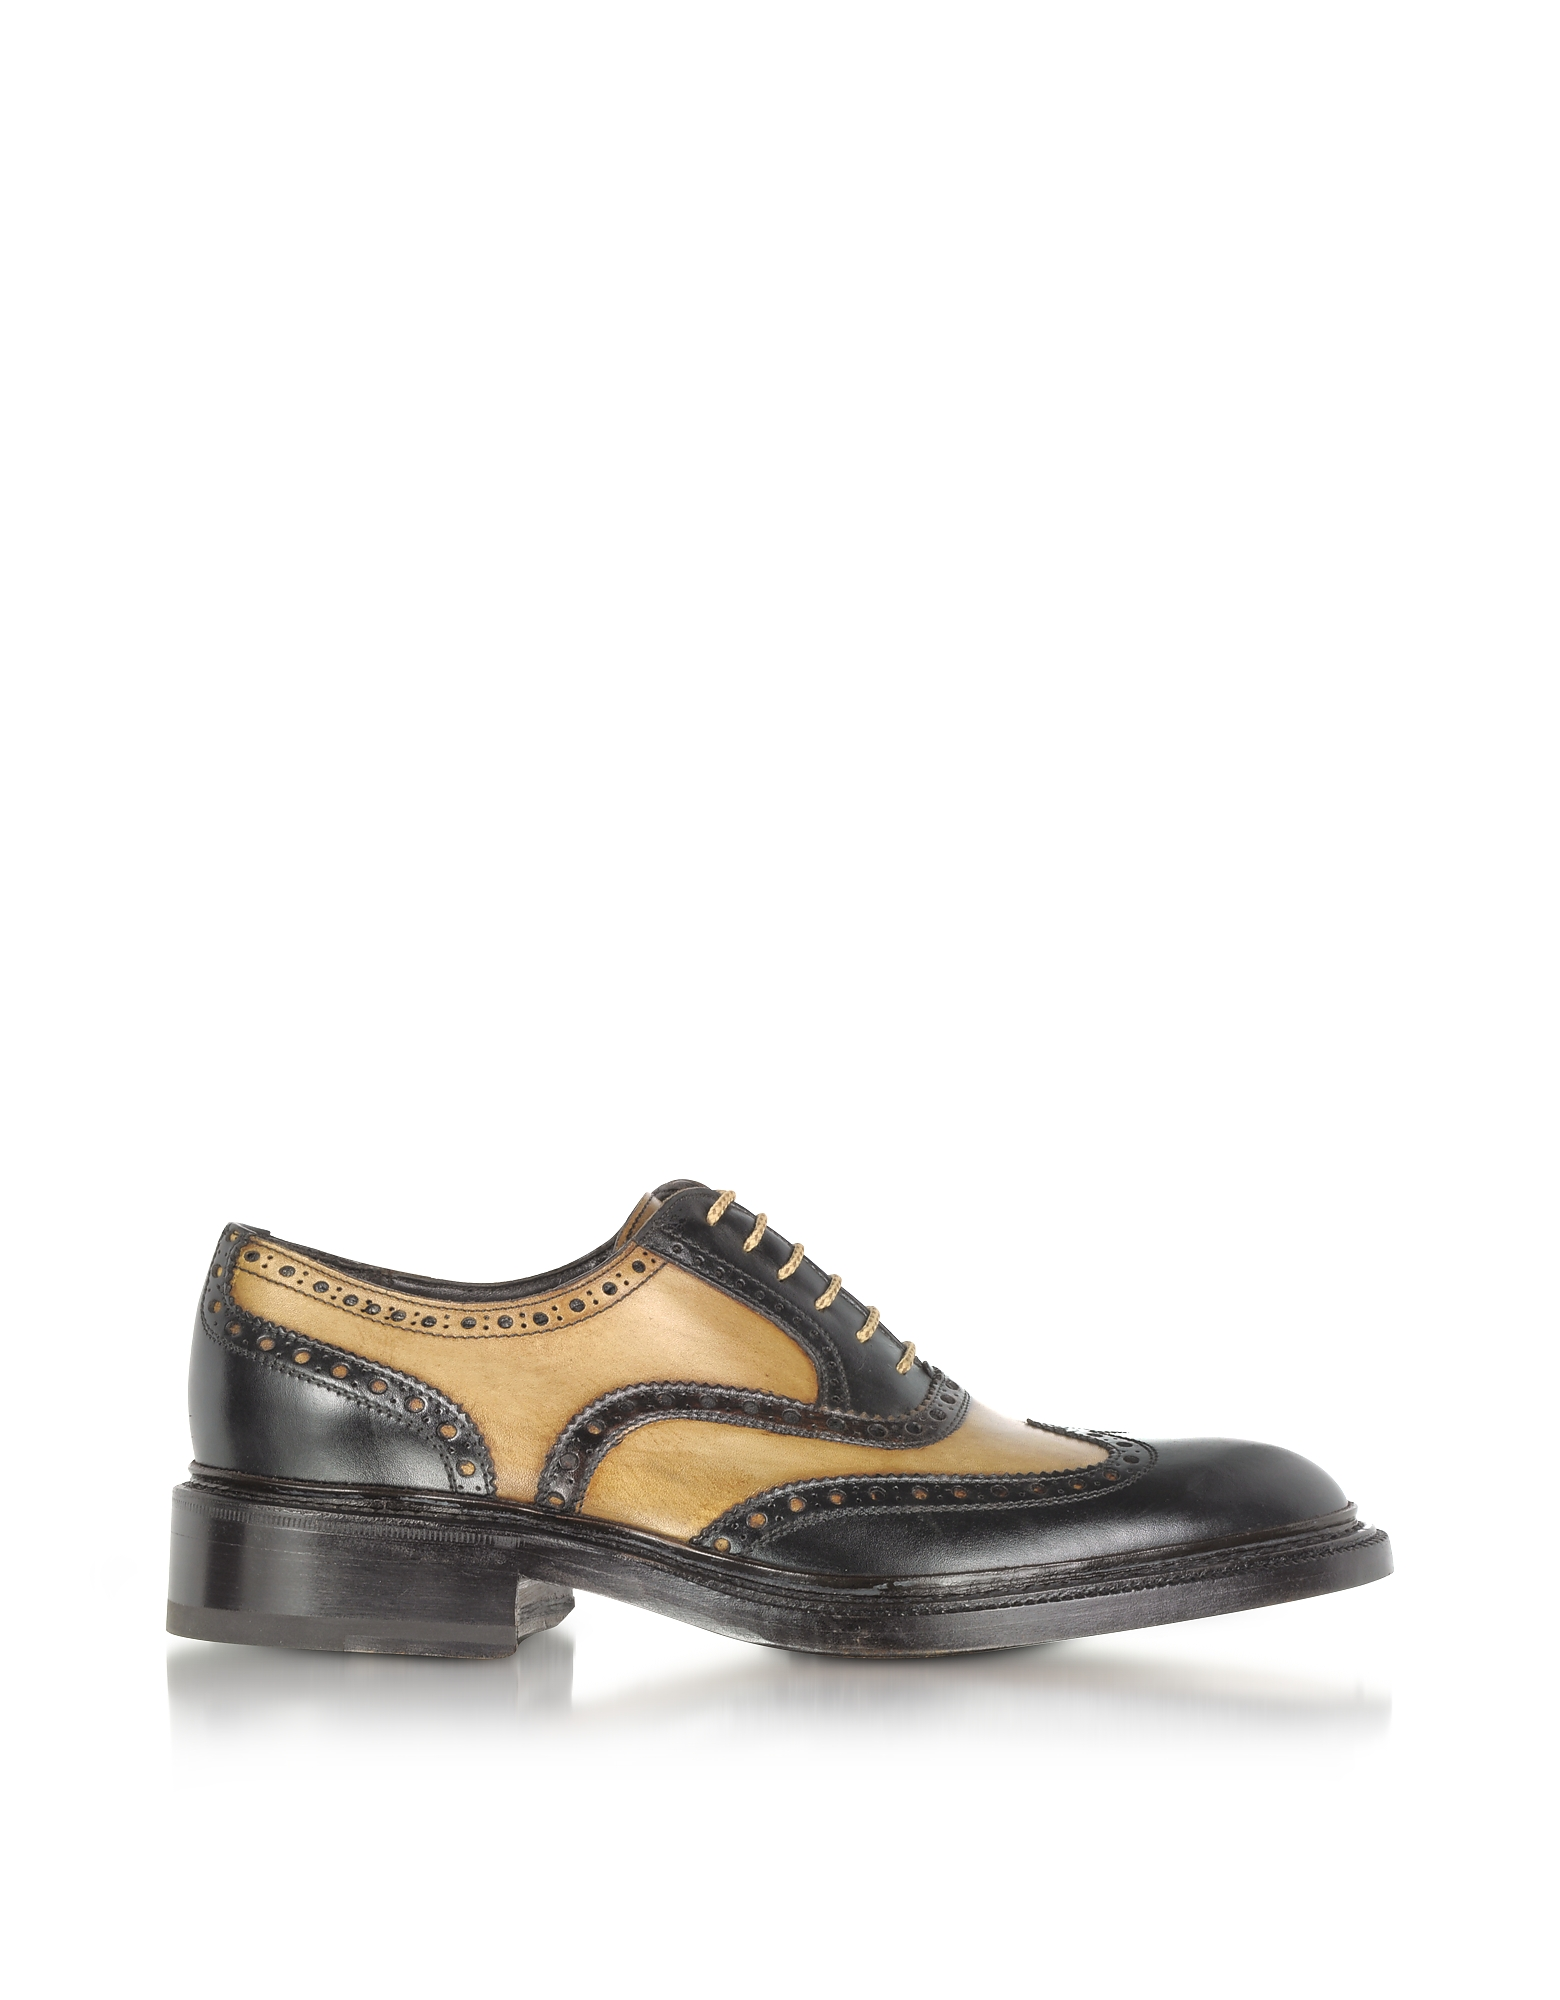 Downton Abbey Men's Fashion Guide Boardwalk Empire Forzieri  Shoes Italian Handcrafted Two-tone Wingtip Oxford Shoes $924.00 AT vintagedancer.com